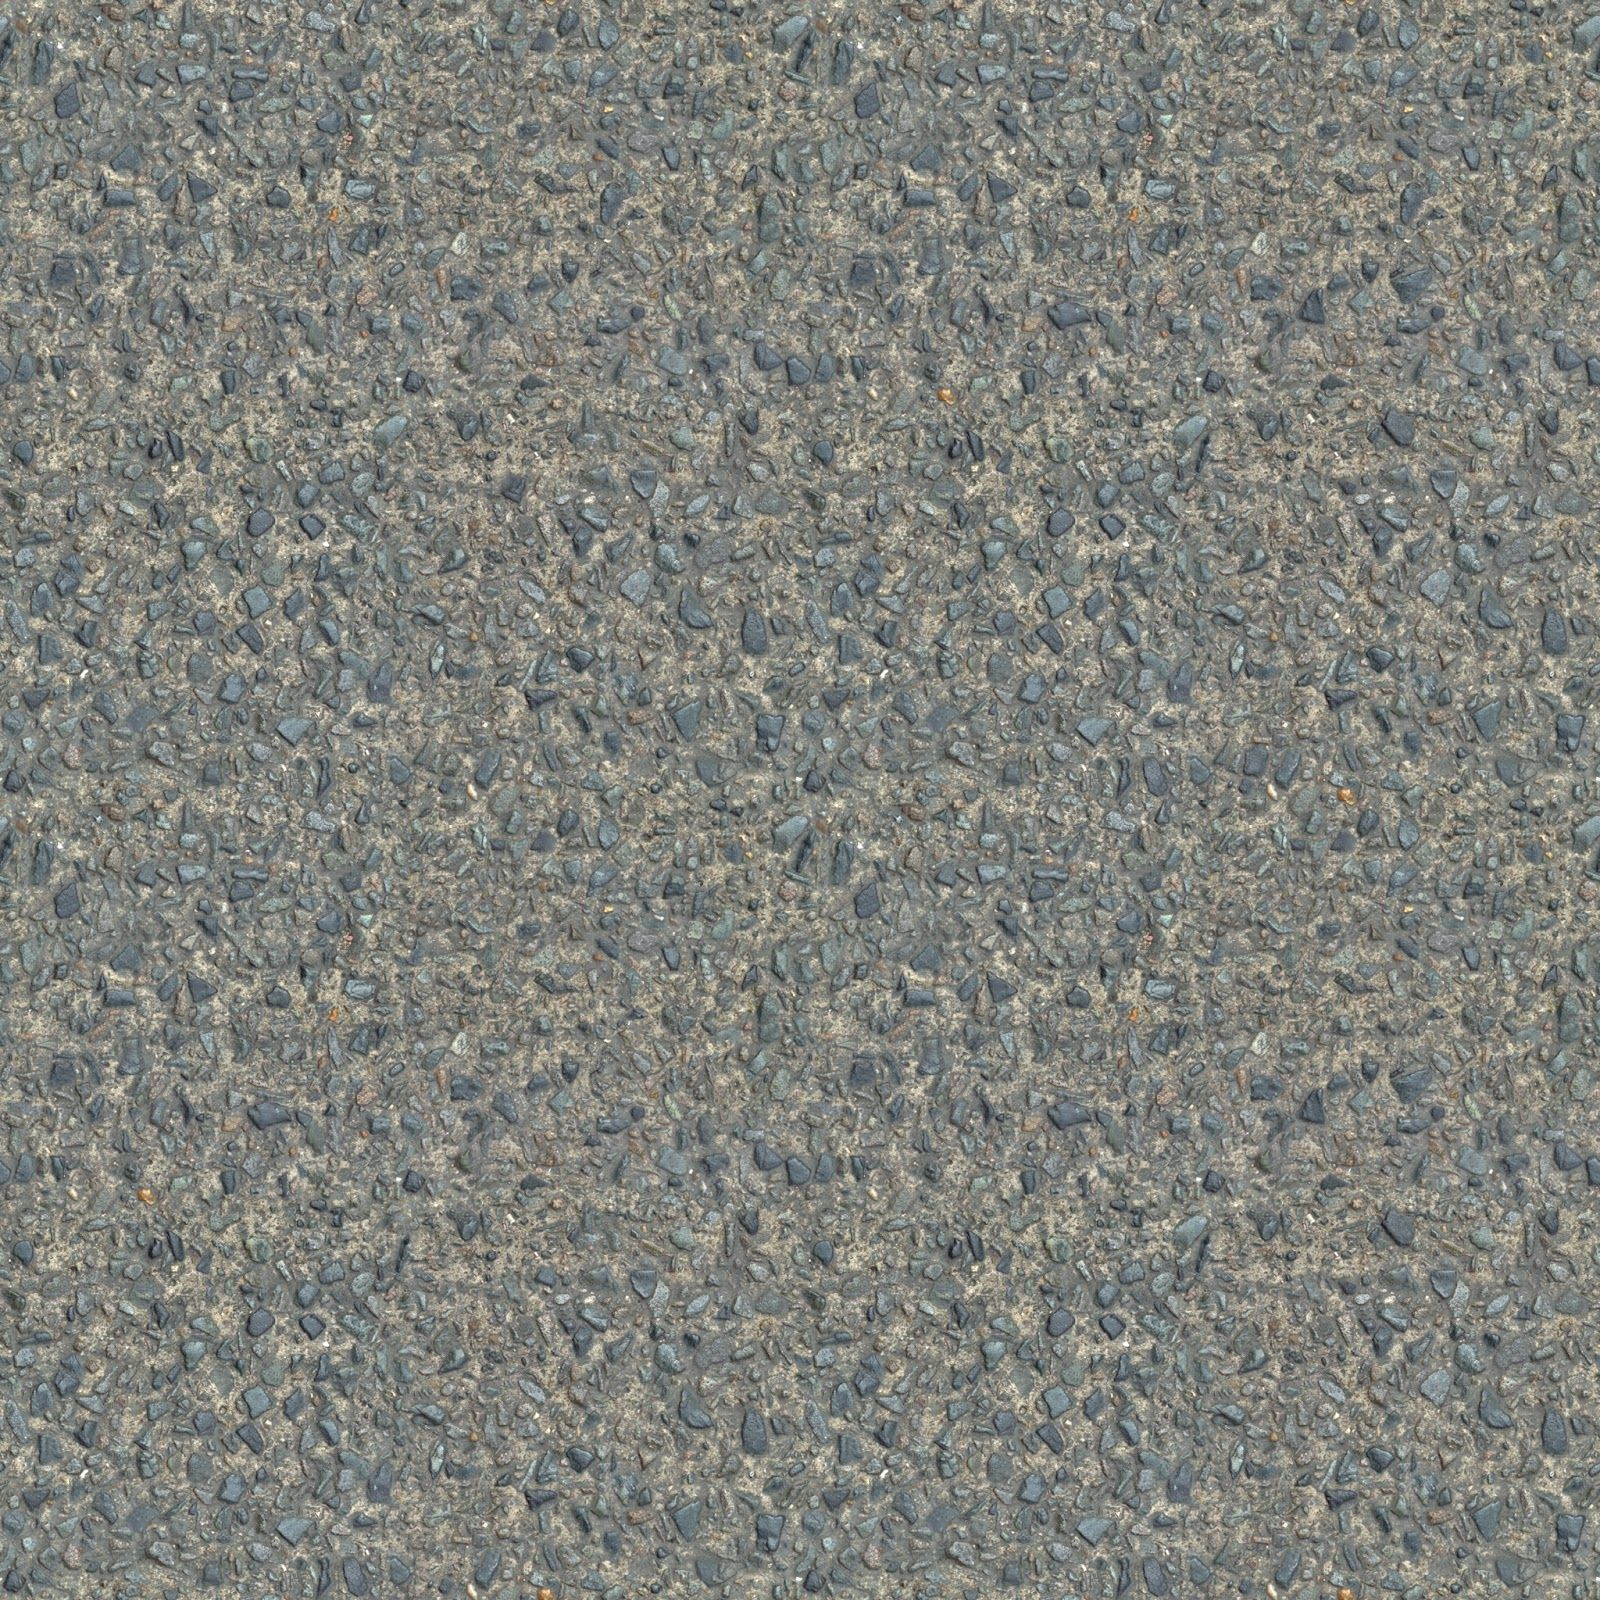 CONCRETE 16 Seamless Floor Granite Stones Texture